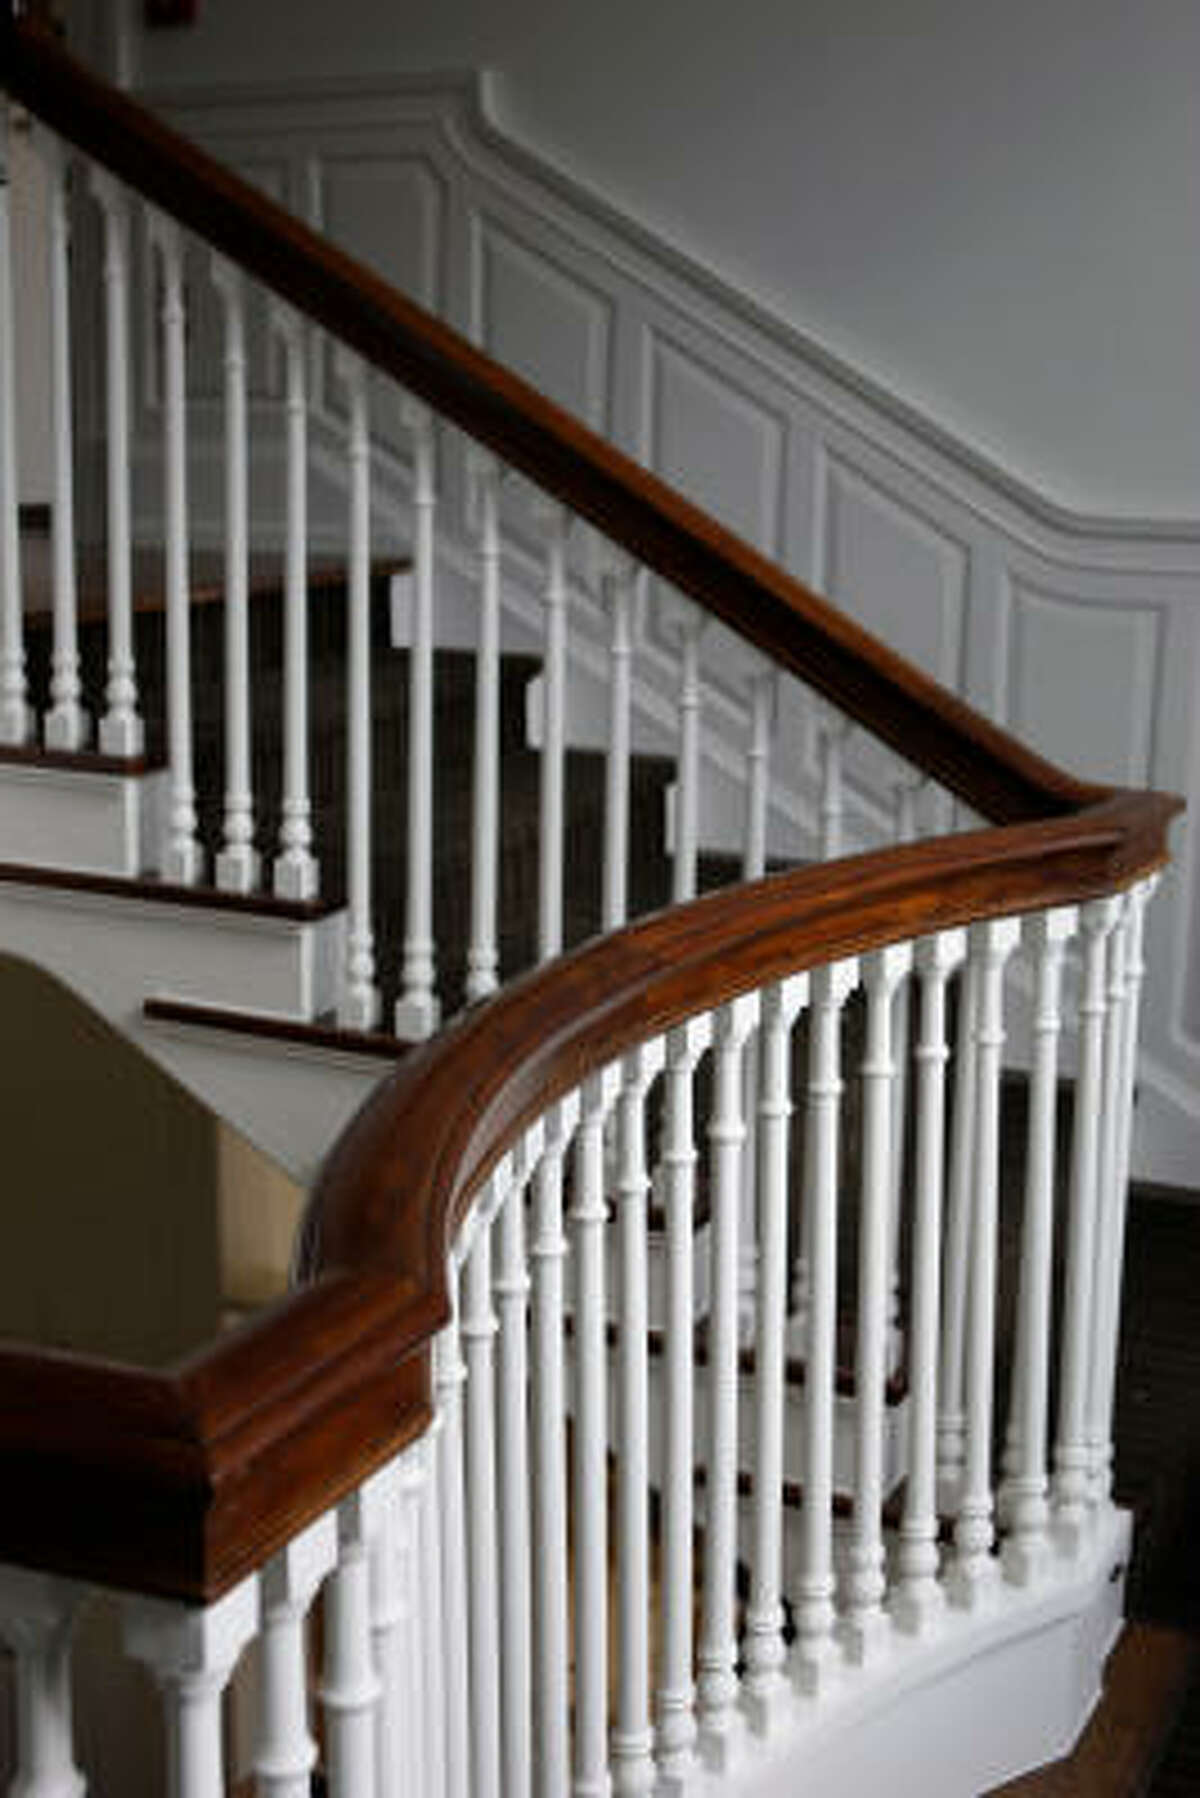 These original stairs lead to the second floor of the former home of William Clayton, now part of the Clayton Library Center for Genealogical Research.